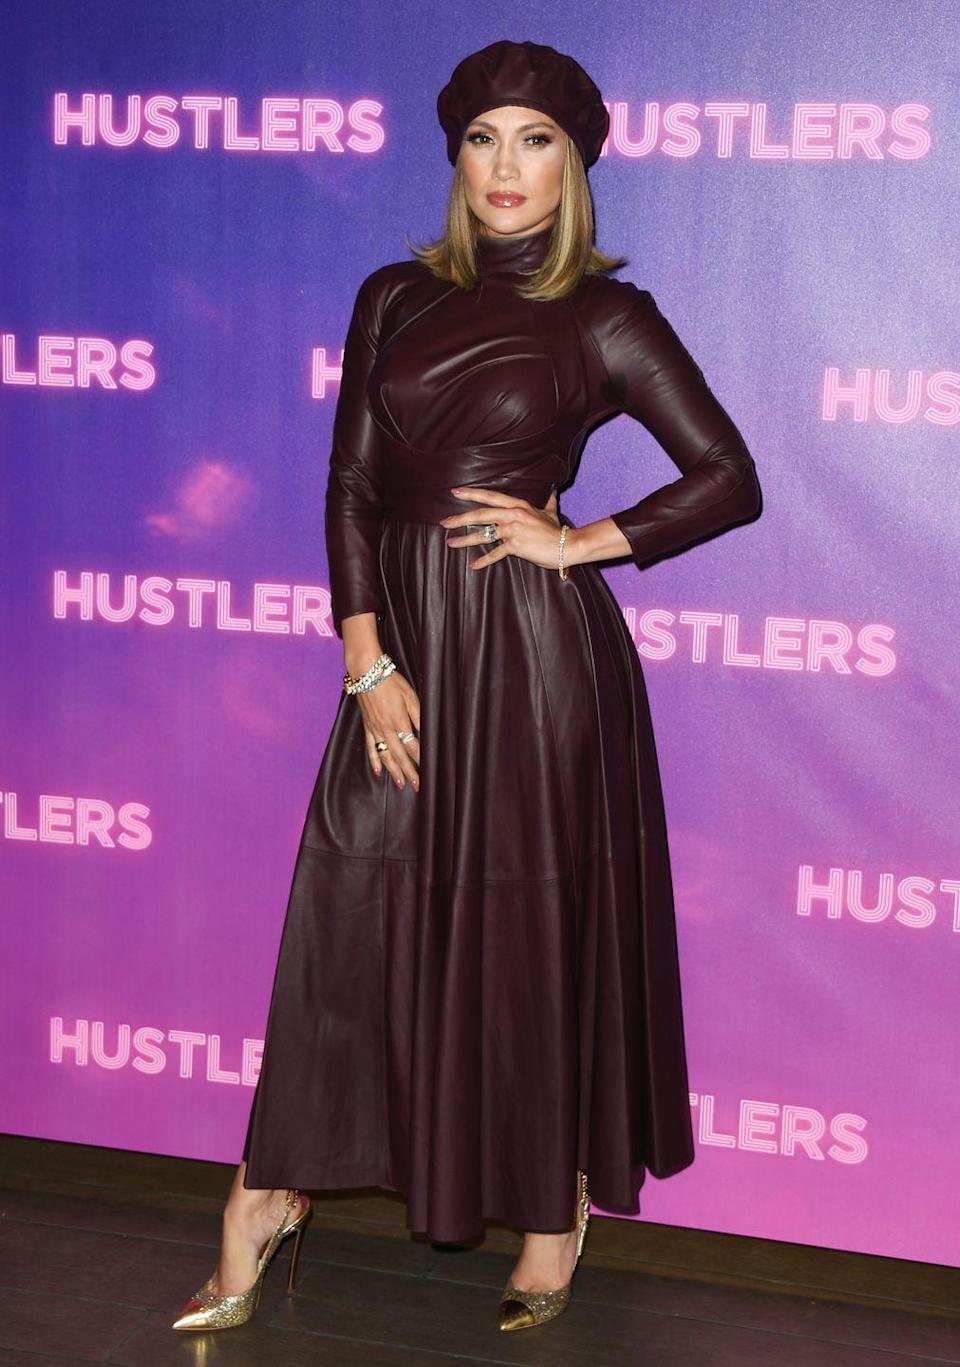 <p>J.Lo wears this burgundy leather getup with a matching beret and metallic gold heels at a photo call for <em>Hustlers</em> in Los Angeles. </p>